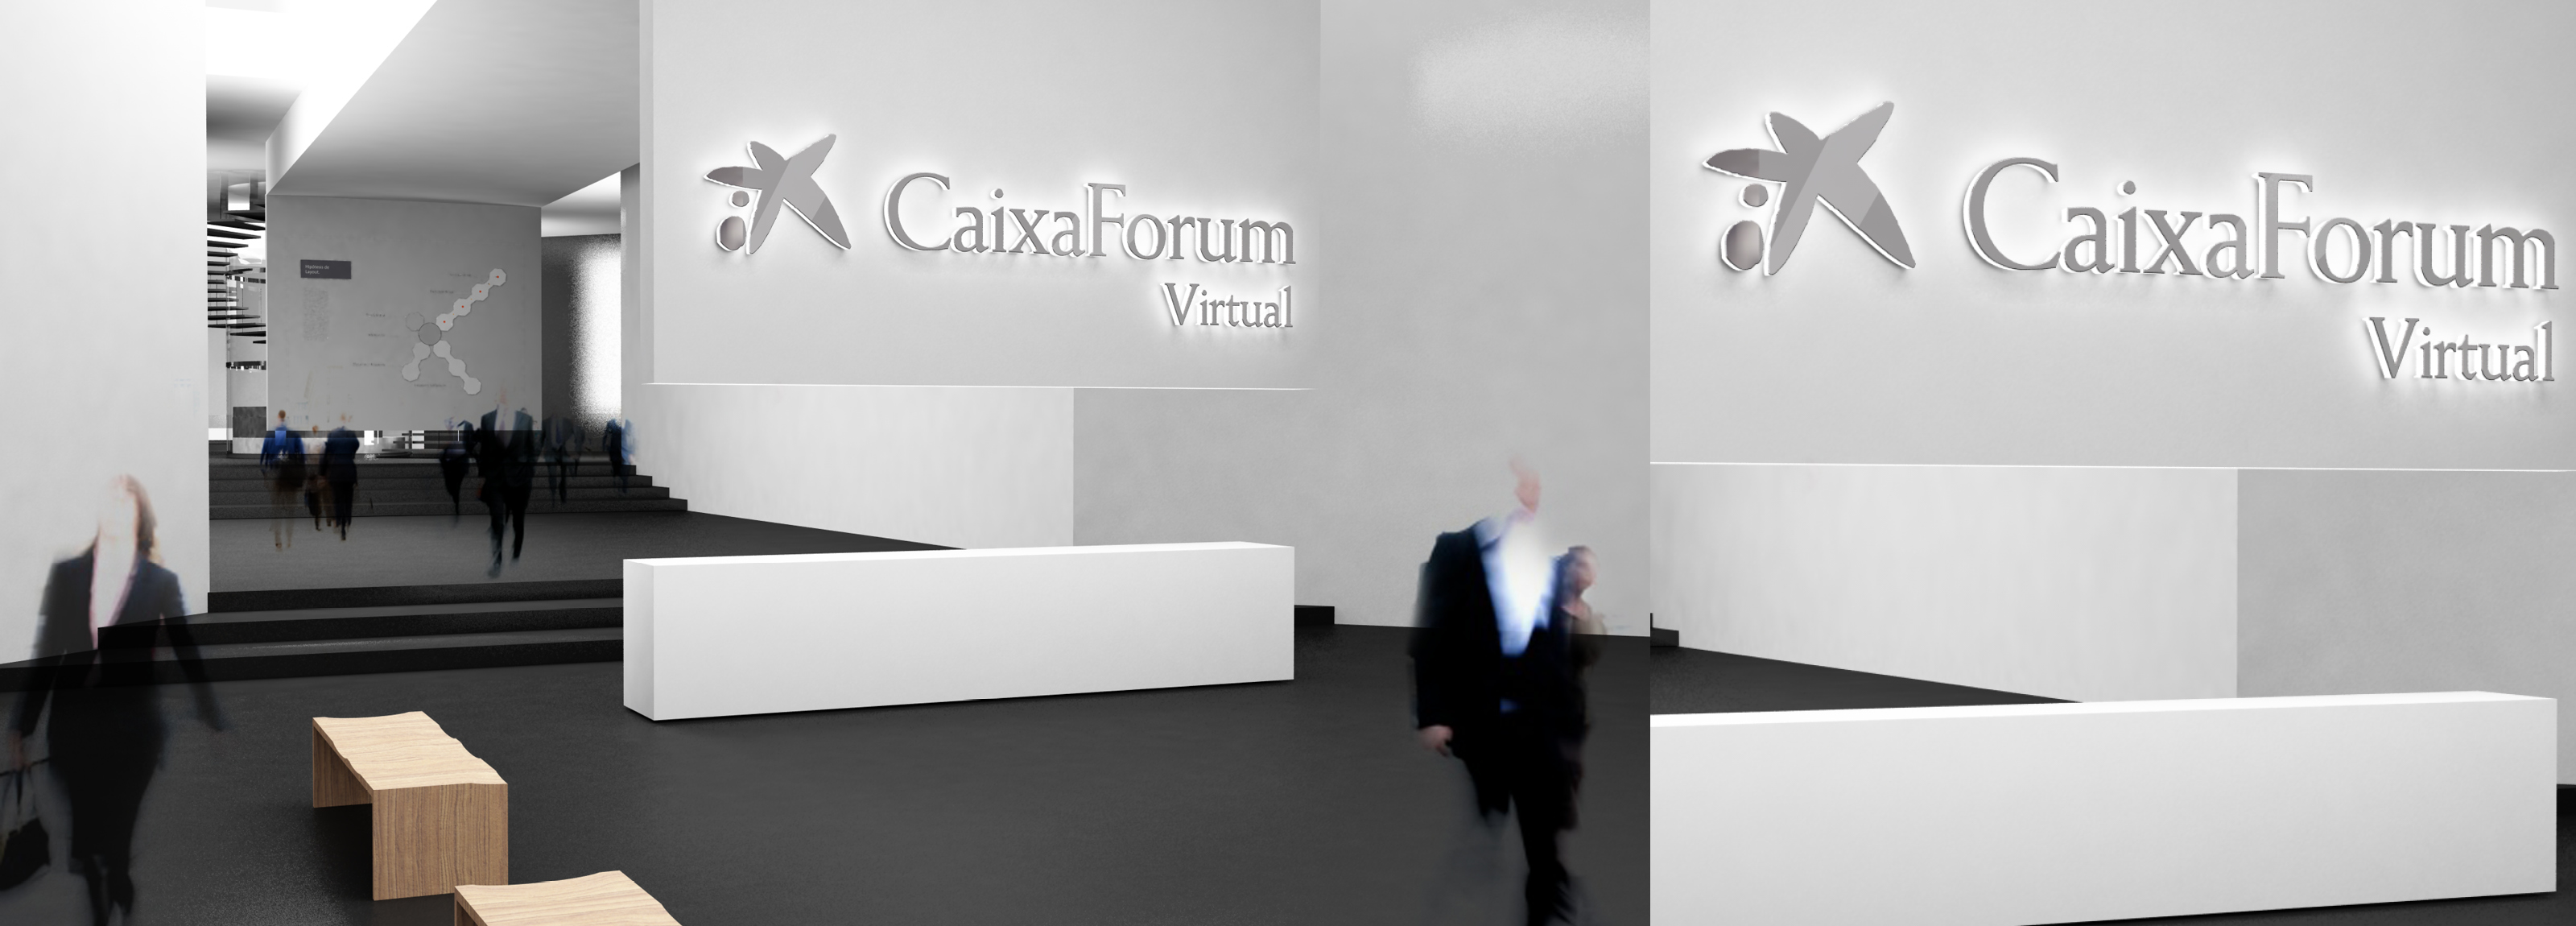 Project realized by Hangar Design Group for a virtual museum of the spanish bank  group Caixa Forum